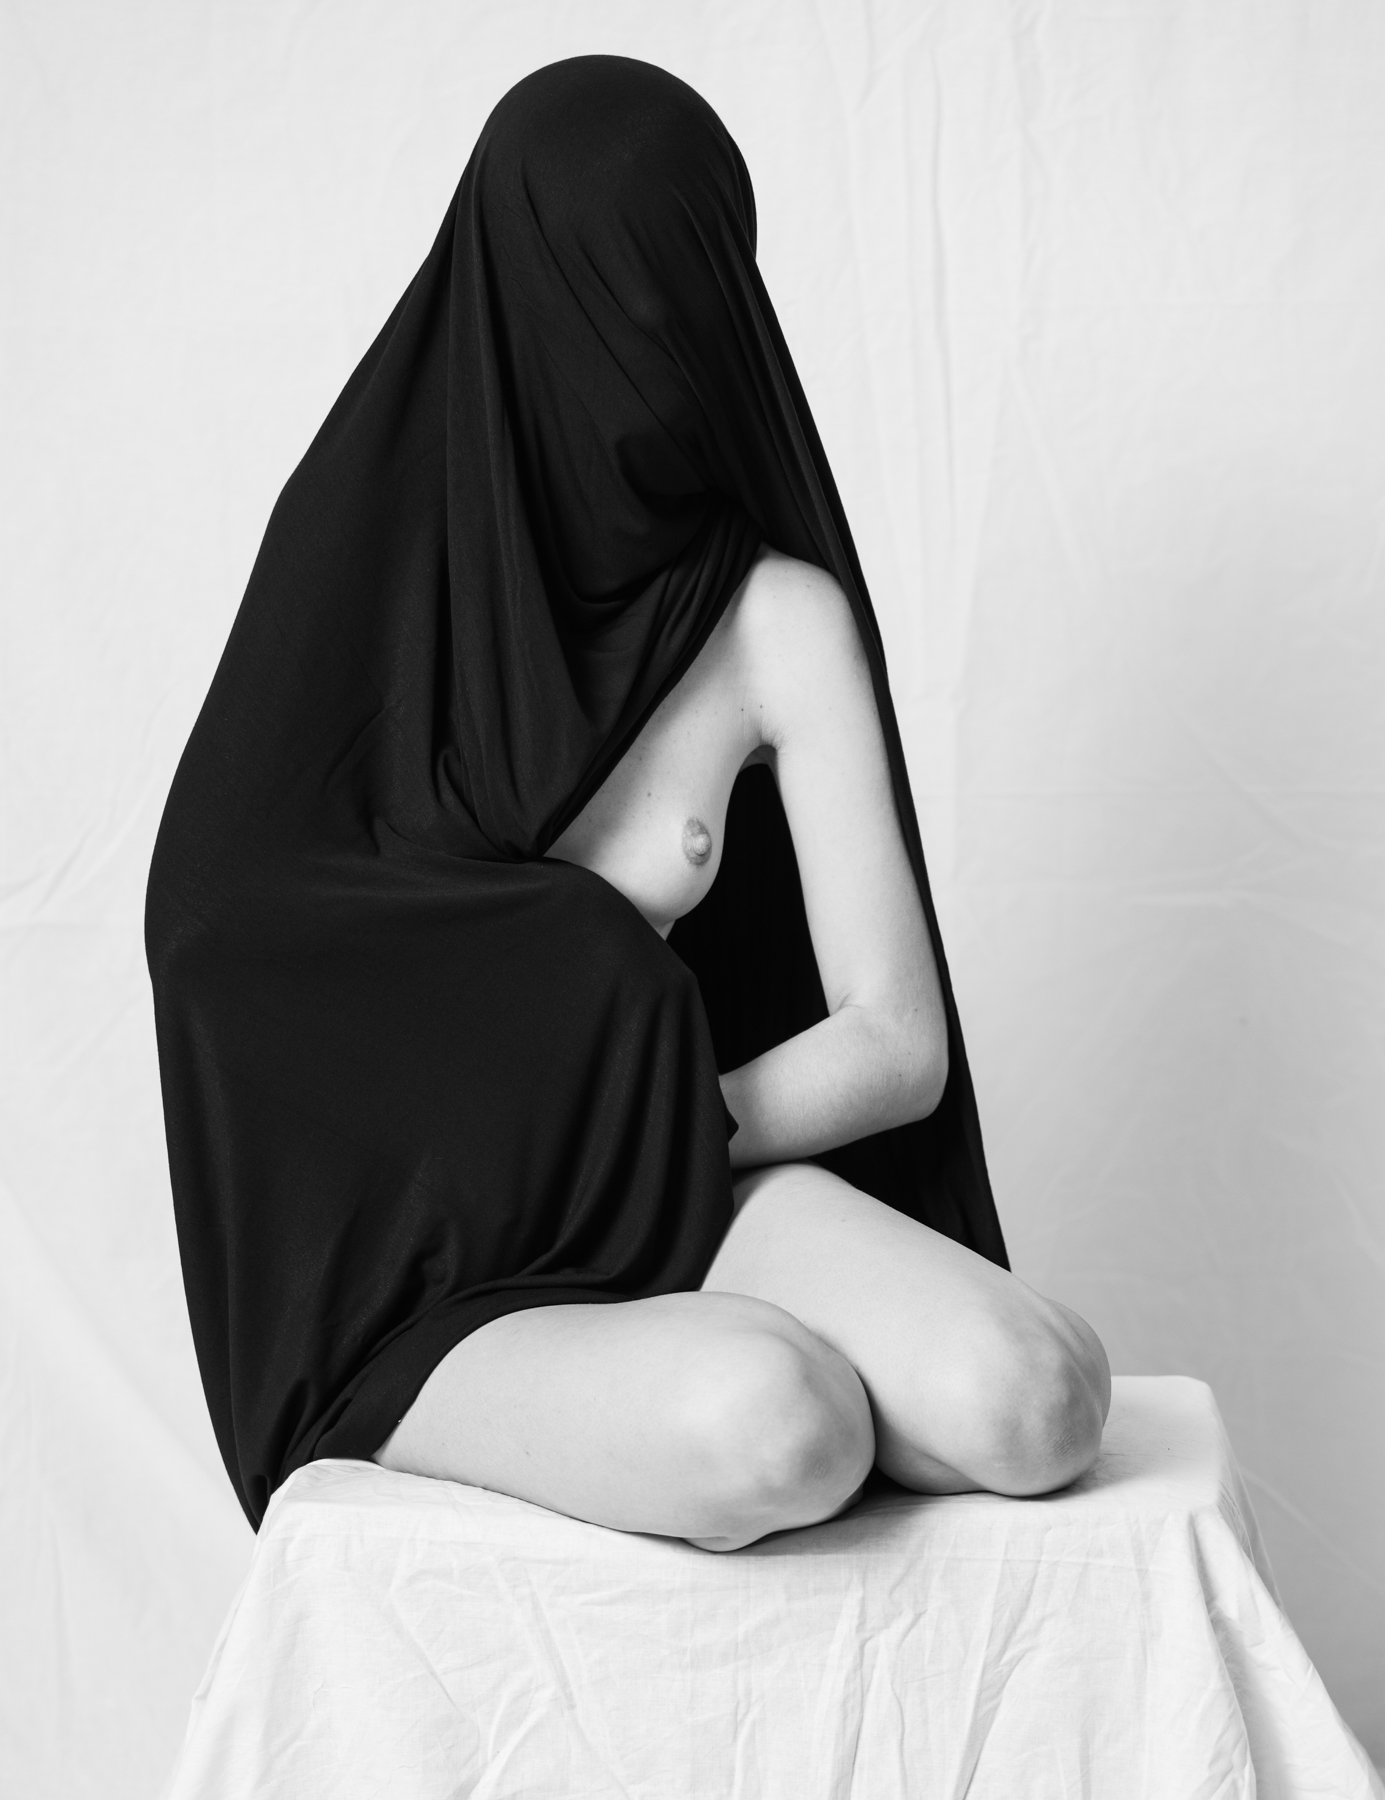 Saman_Majd_Behind the Veil_Veiled_2.jpg